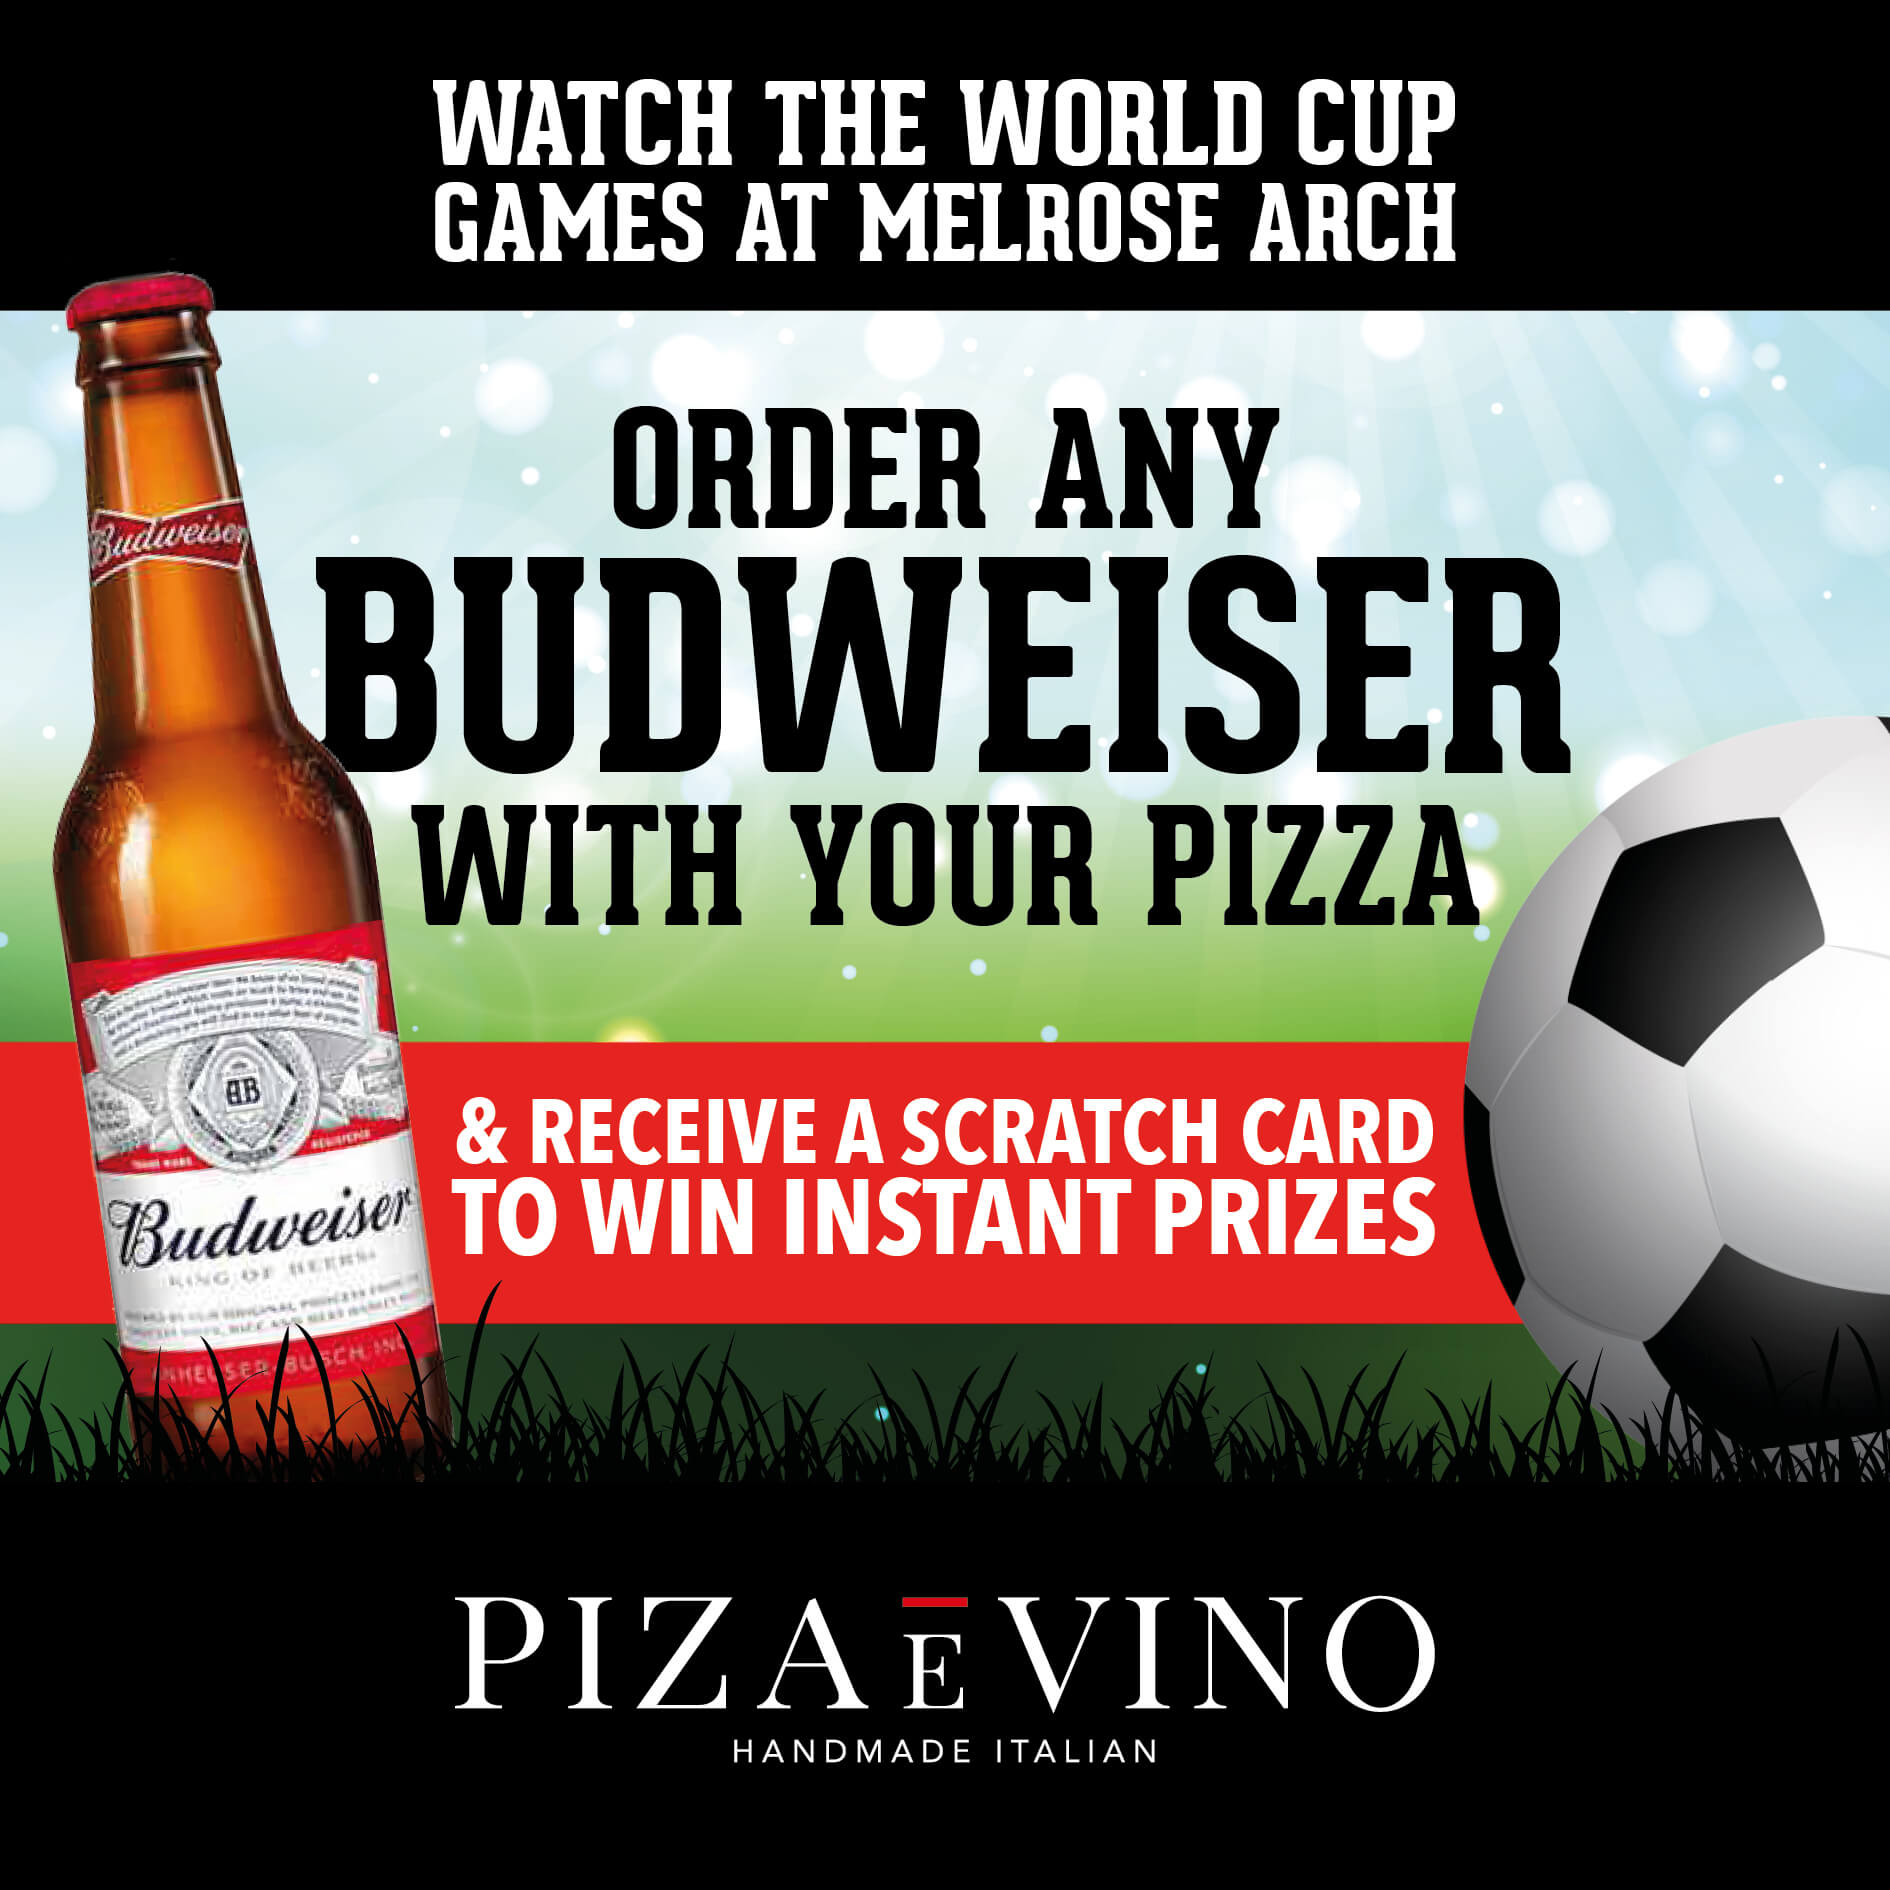 Watch the World Cup at Melrose Arch